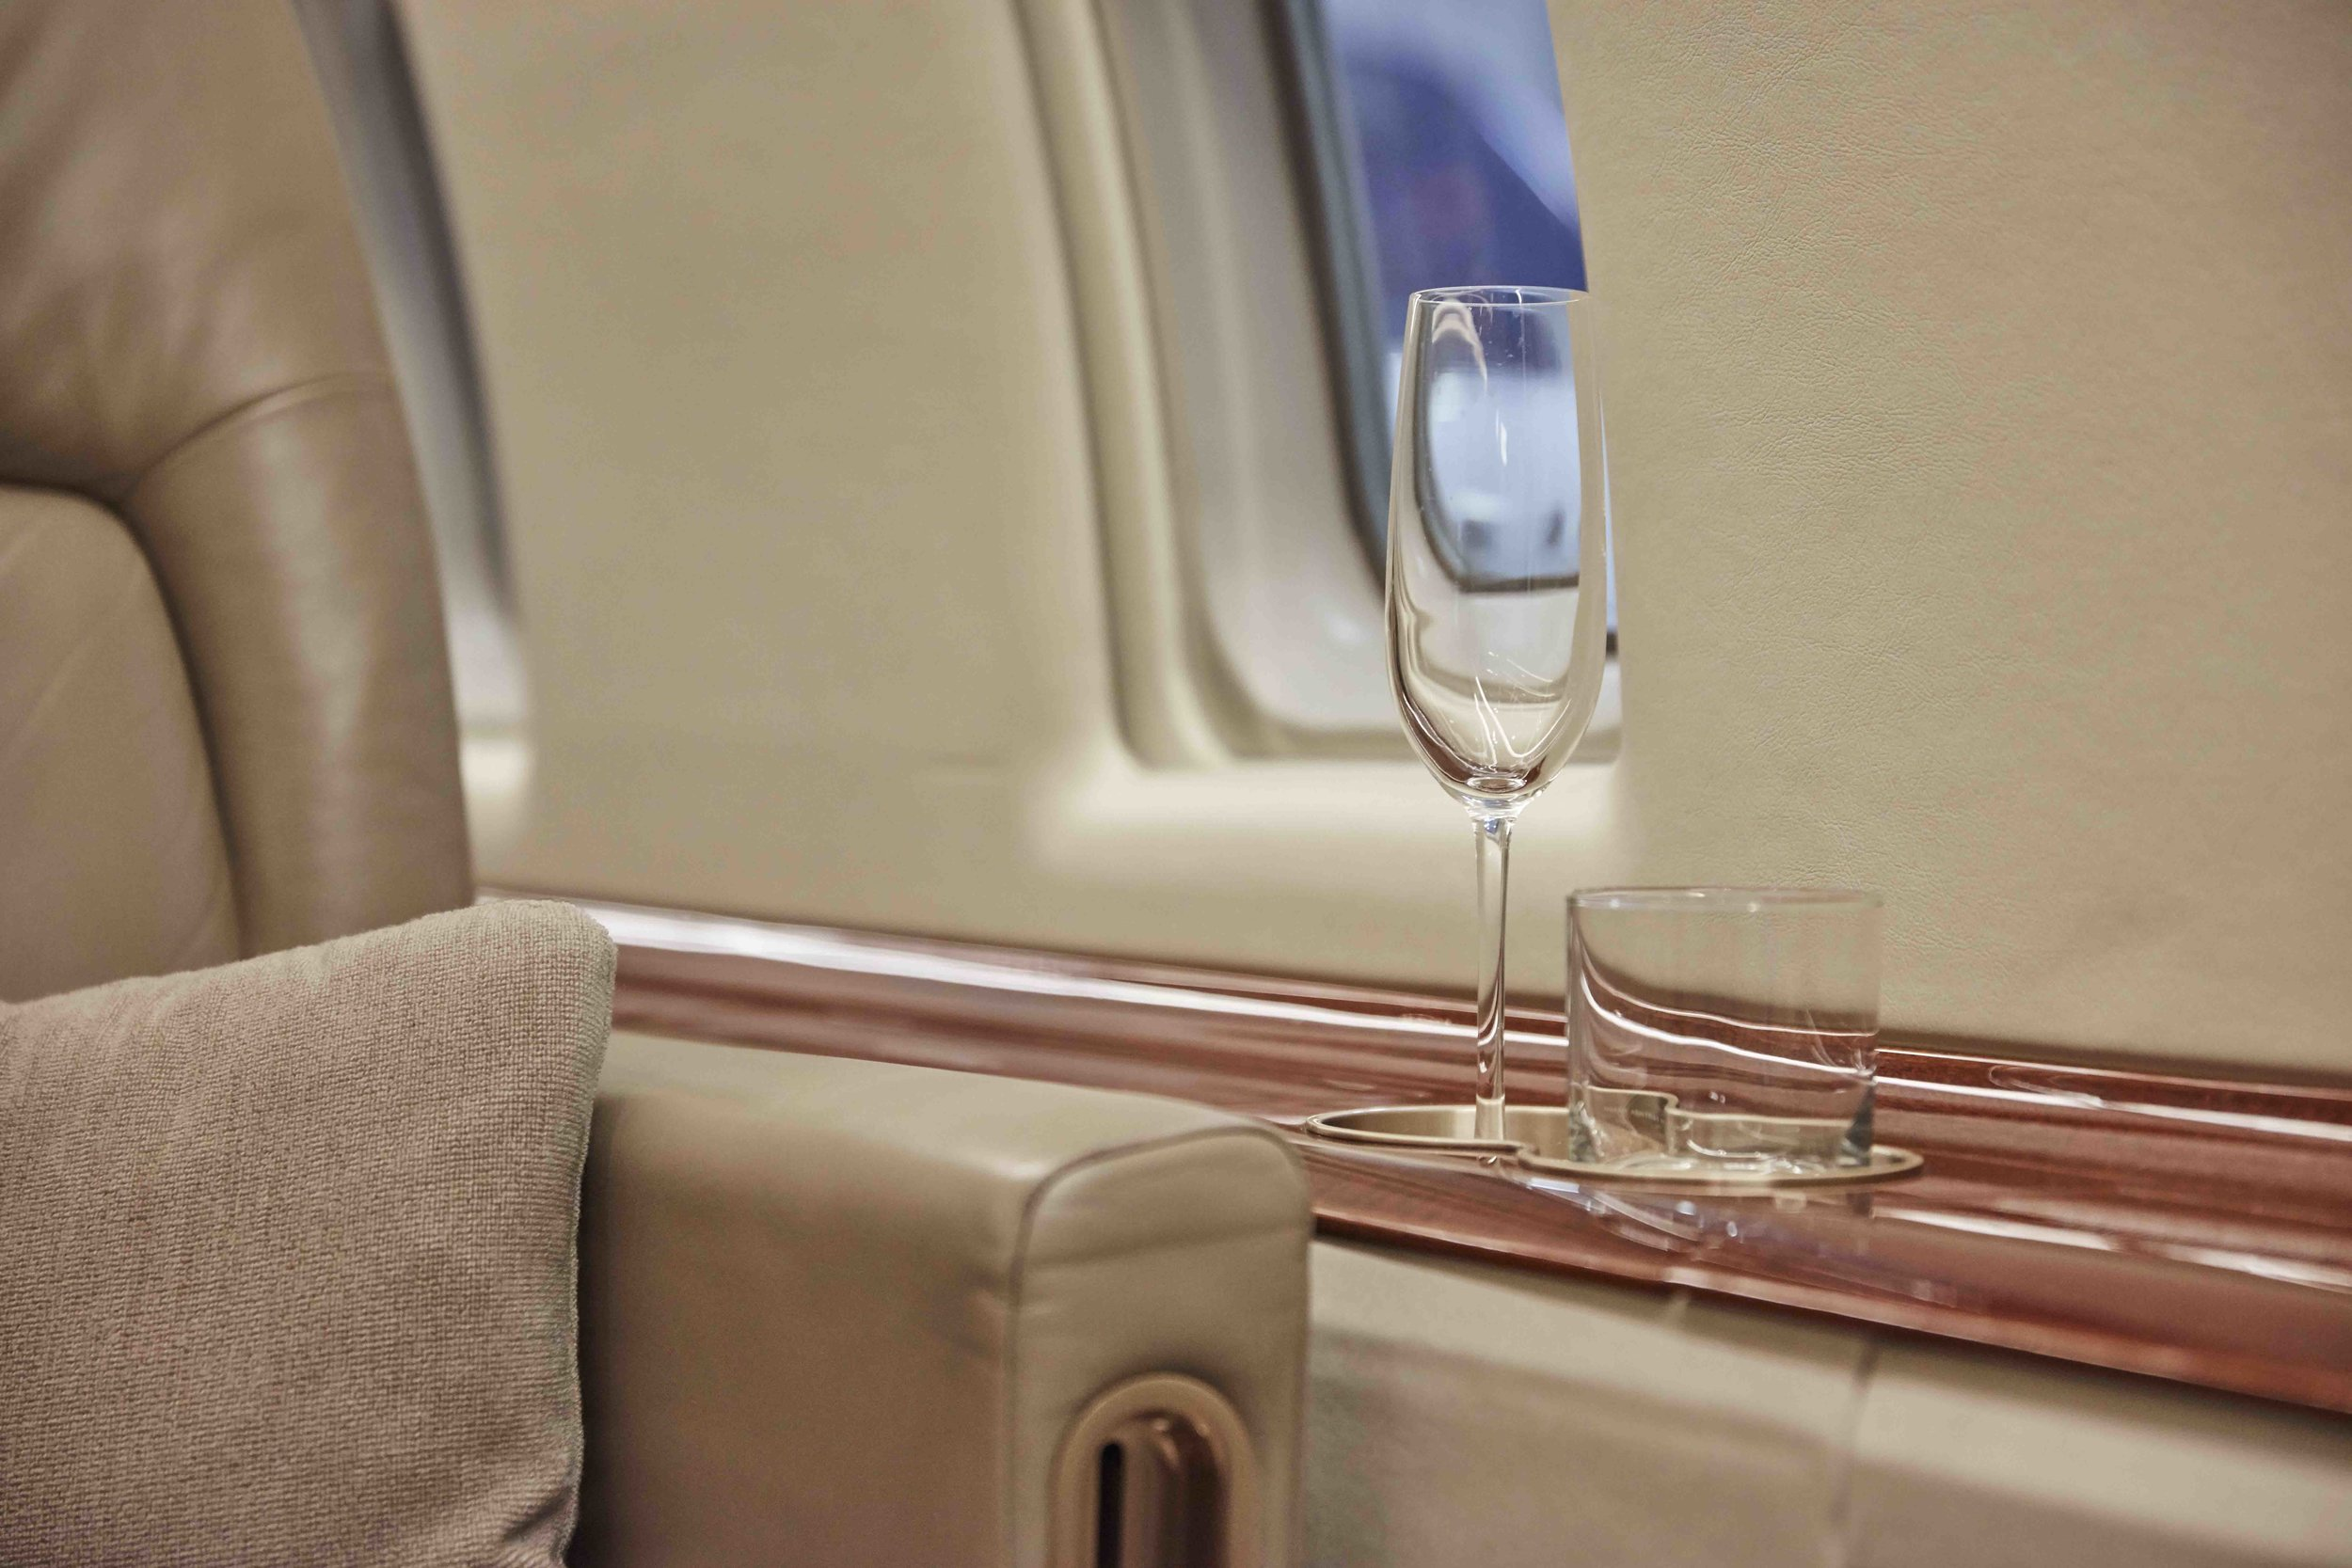 2005 Challenger 604 For Sale Detail Photos 8